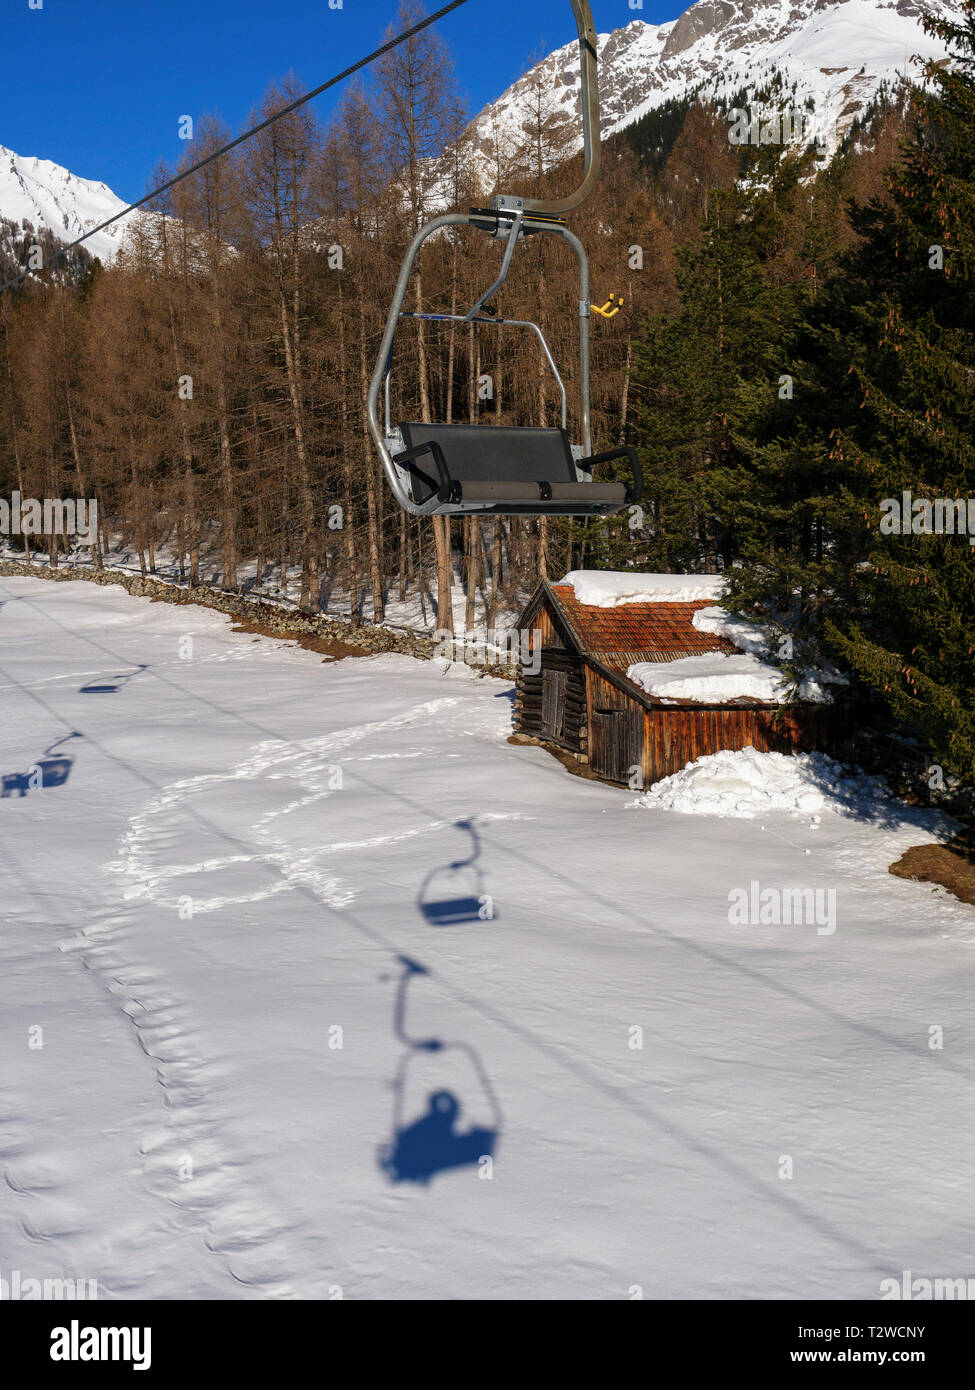 skilift and piste, skiing area Hochimst, Imst, Tyrol, Austria, Europe Stock Photo